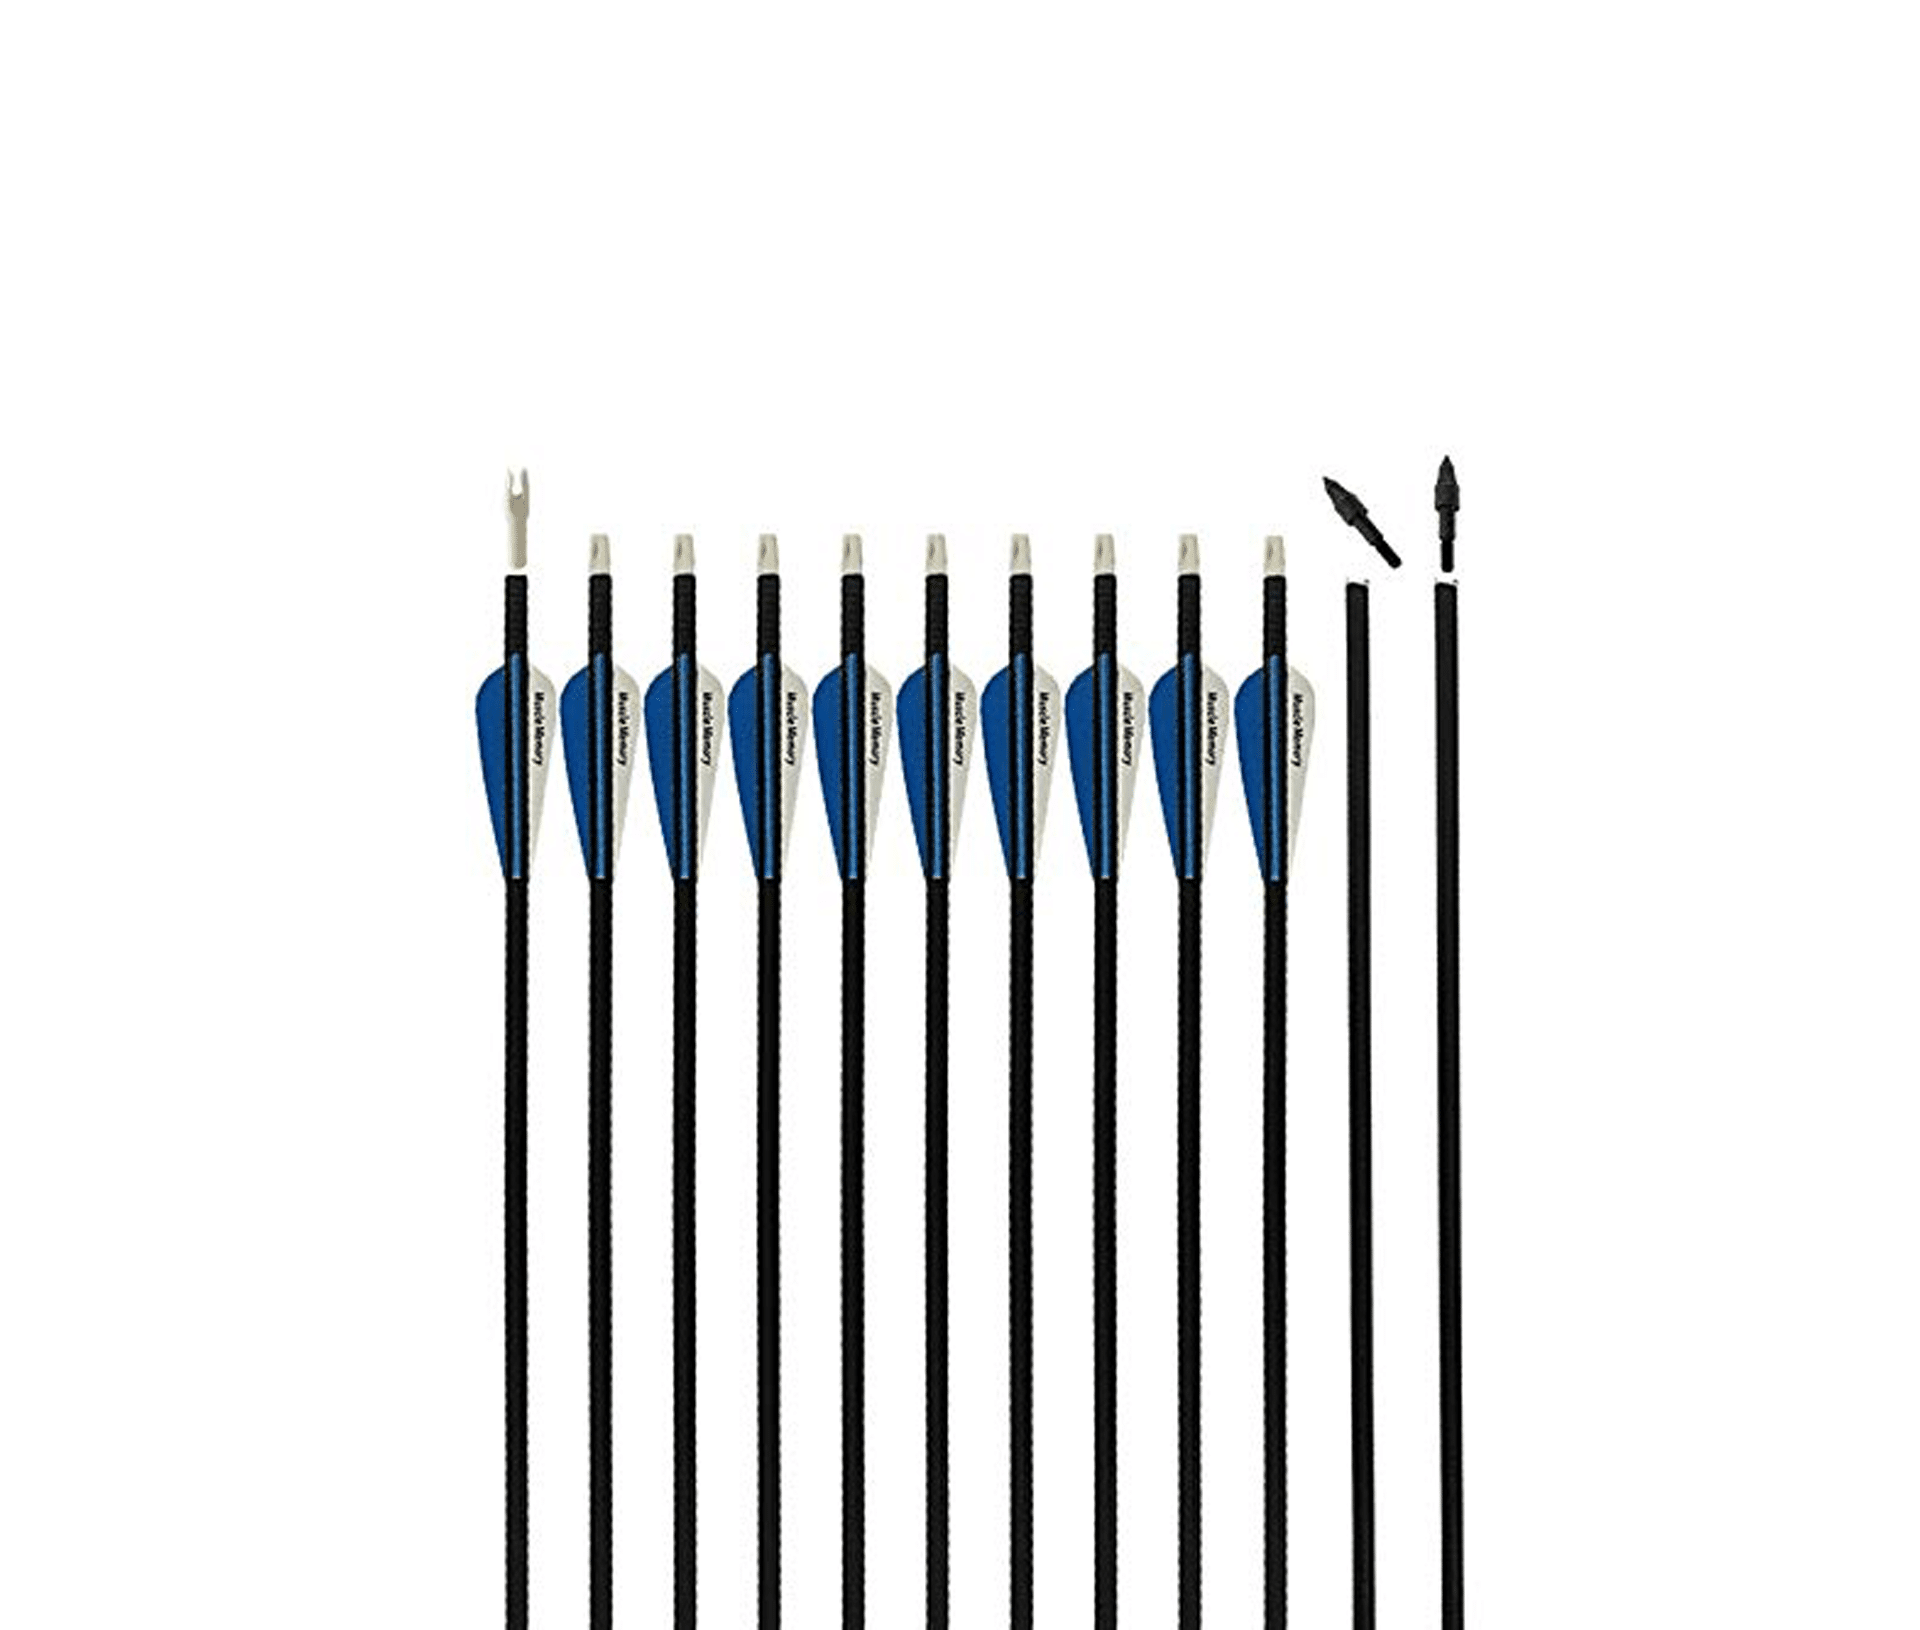 REEGOX Archery Arrows 30 inch Carbon